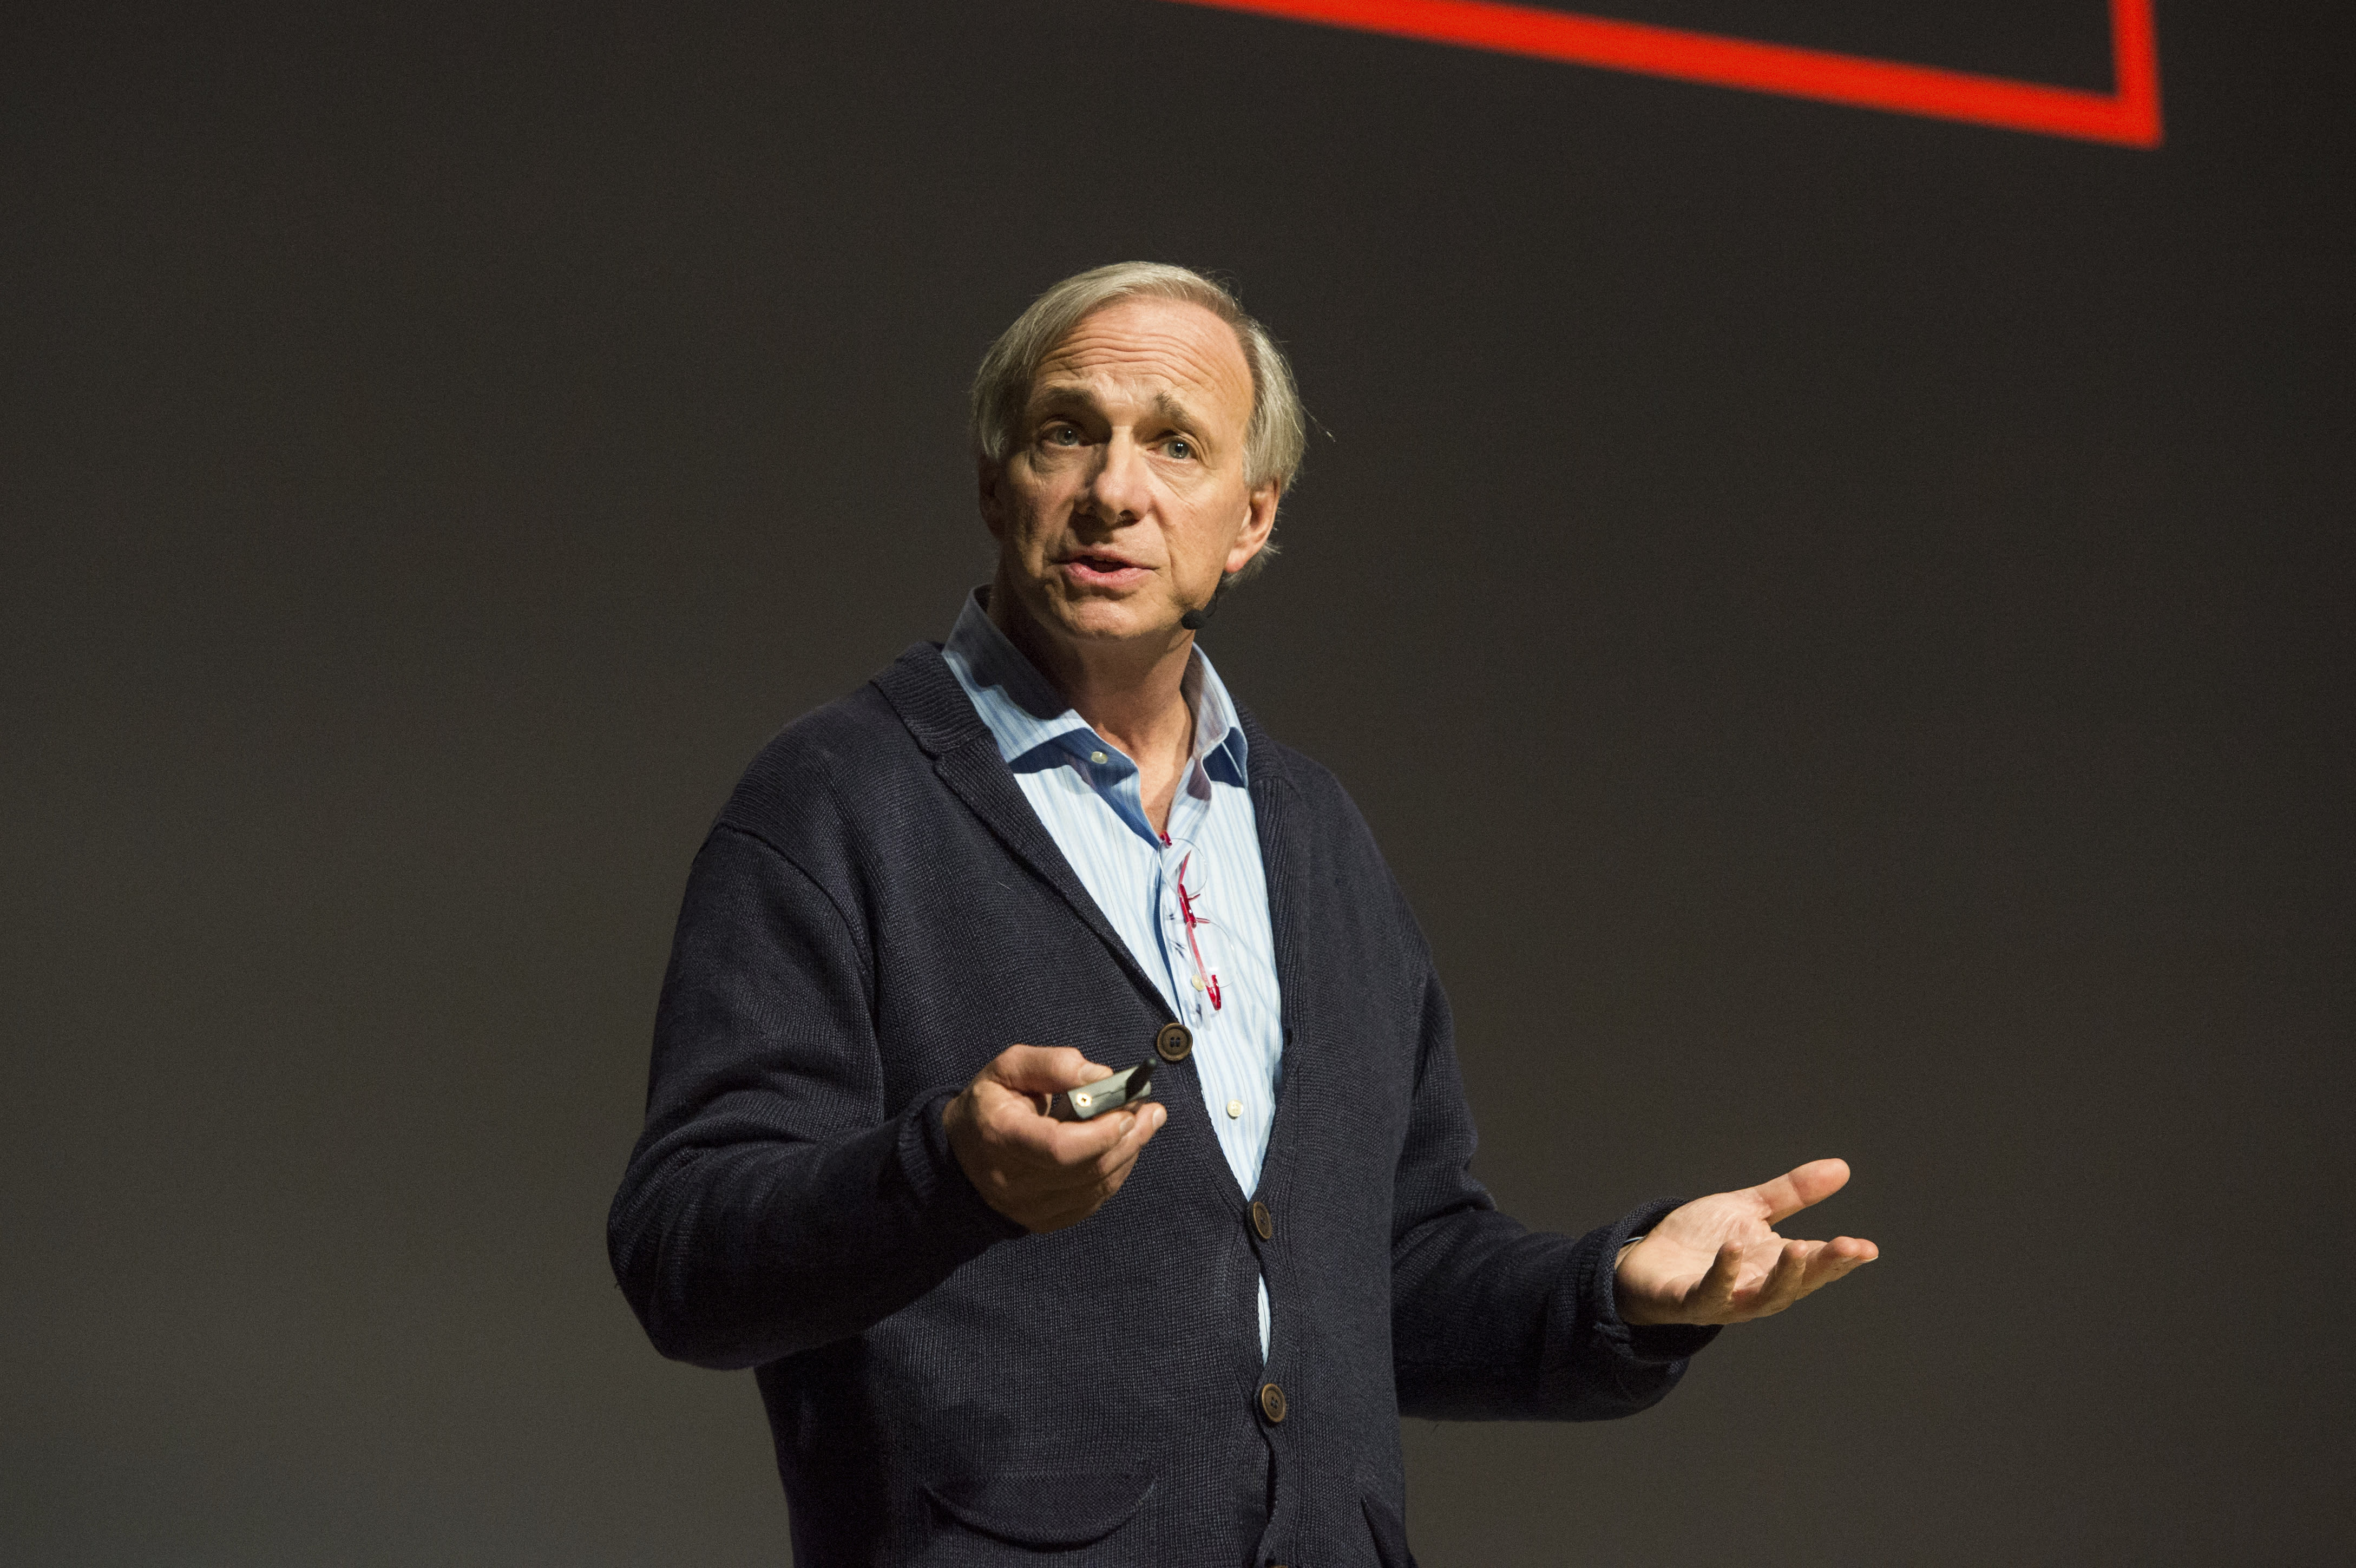 Ray Dalio's next bet: A book to teach kids about success, and foster 'mutual caring'